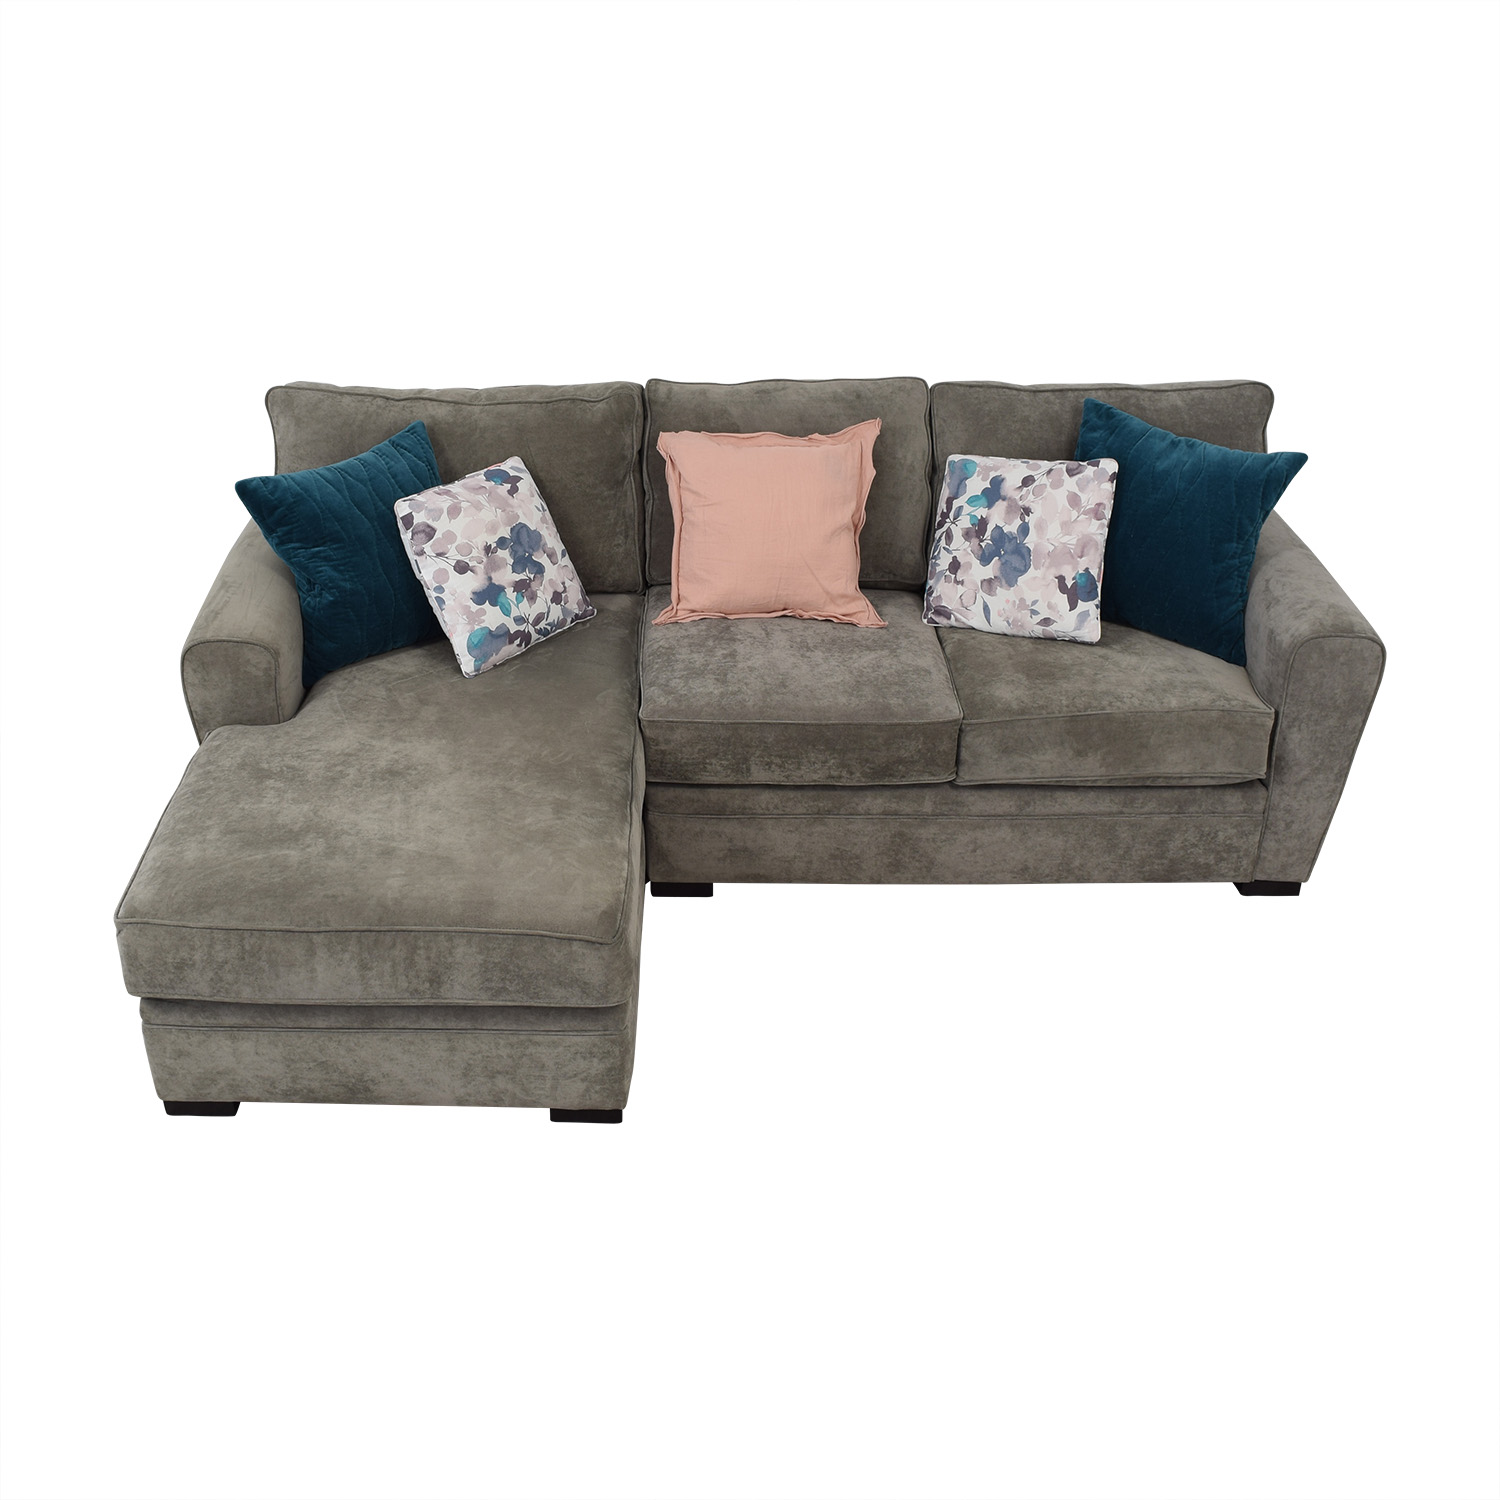 Raymour & Flanigan Raymour & Flanigan Two Piece Sectional